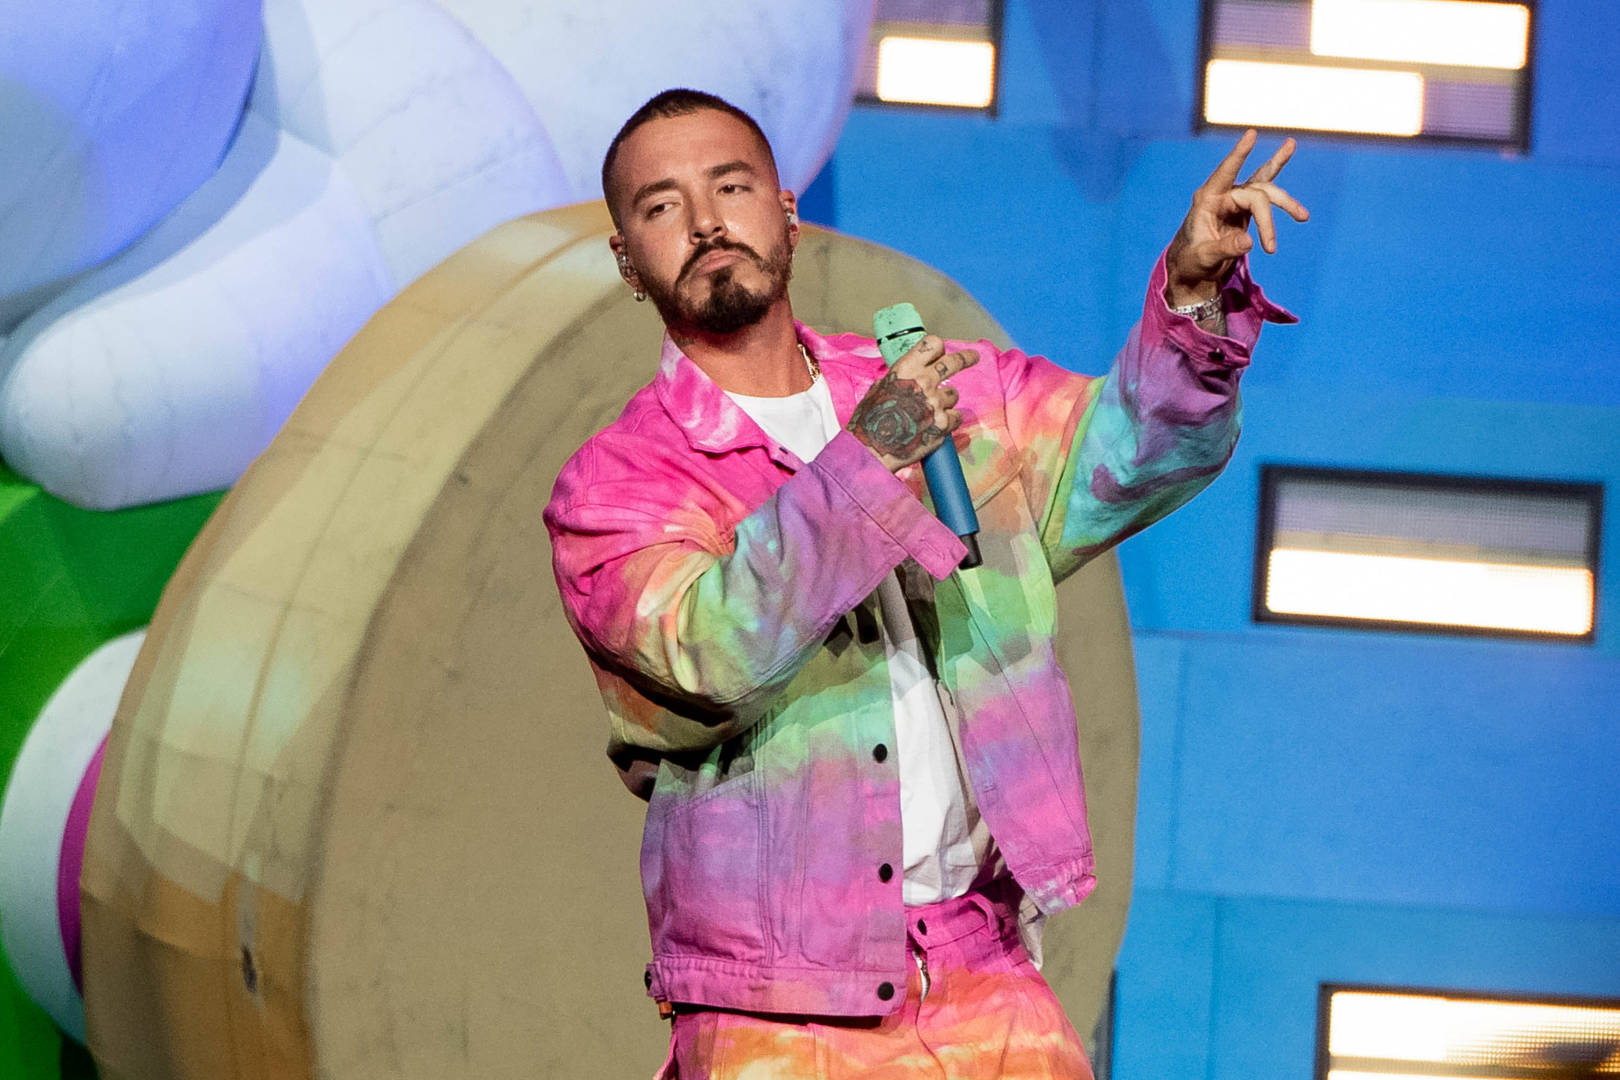 J Balvin & Bad Bunny To Perform At Super Bowl Halftime Show: Report